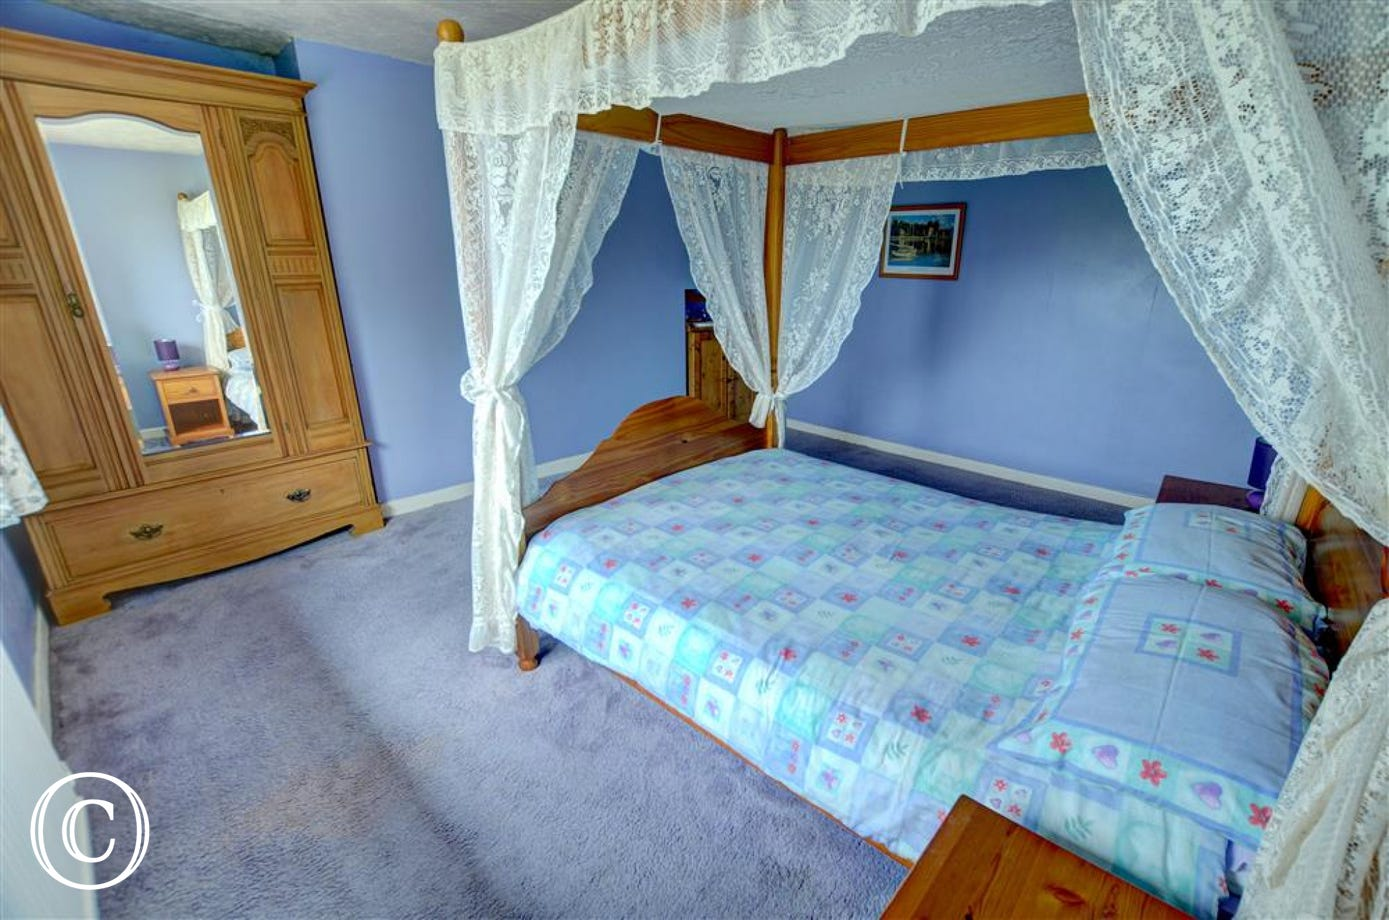 The master bedroom has a four-poster double bed and pine furniture